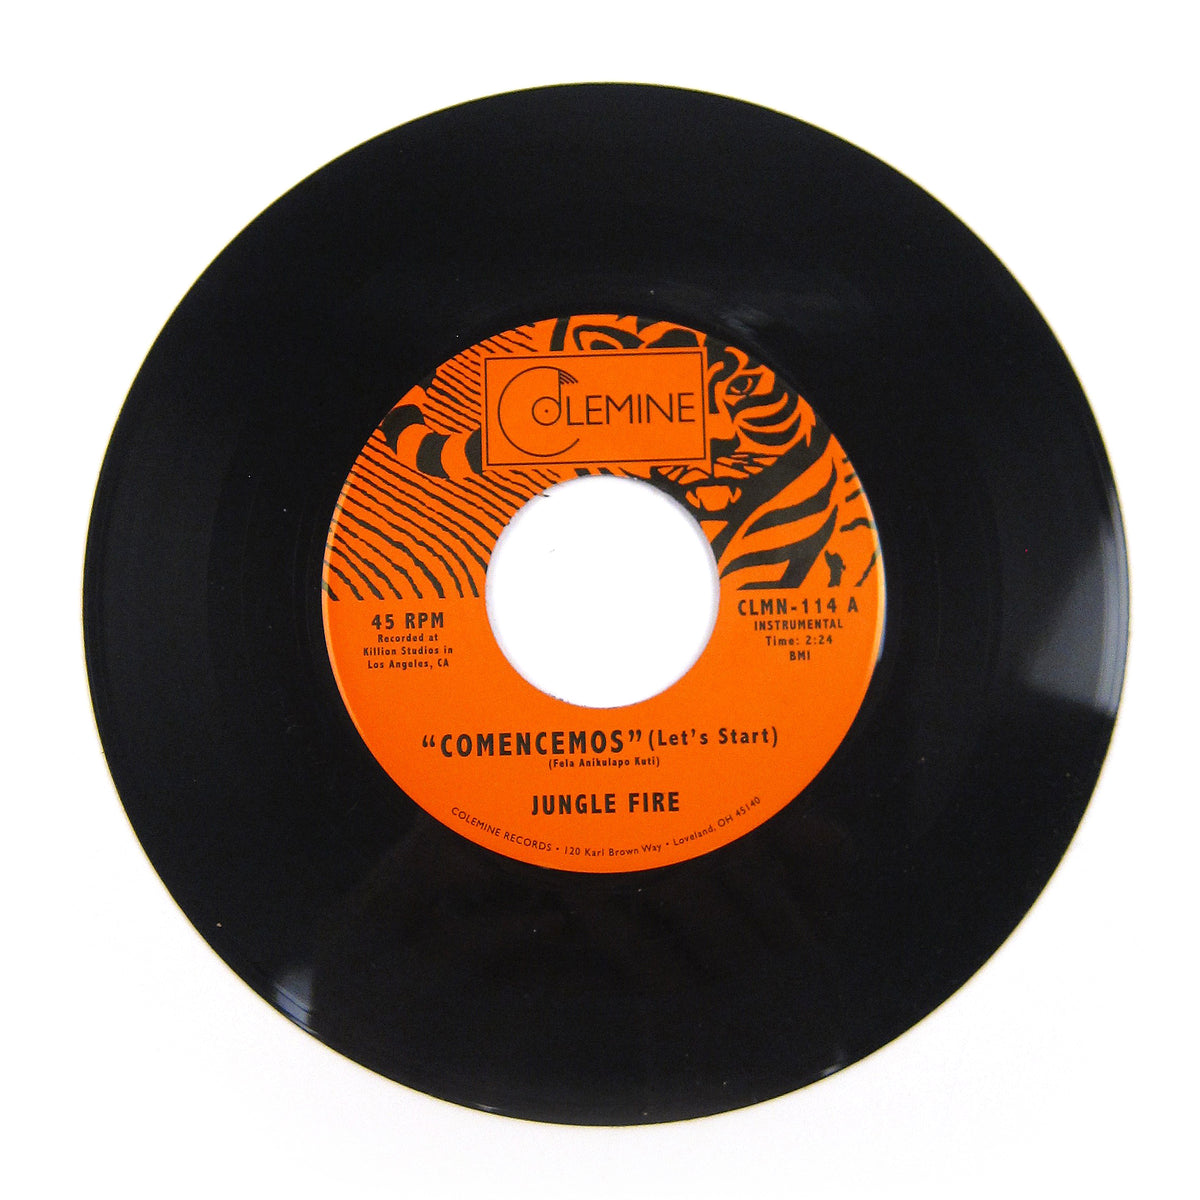 Jungle Fire: Comencemos (Let's Start) Vinyl 7""